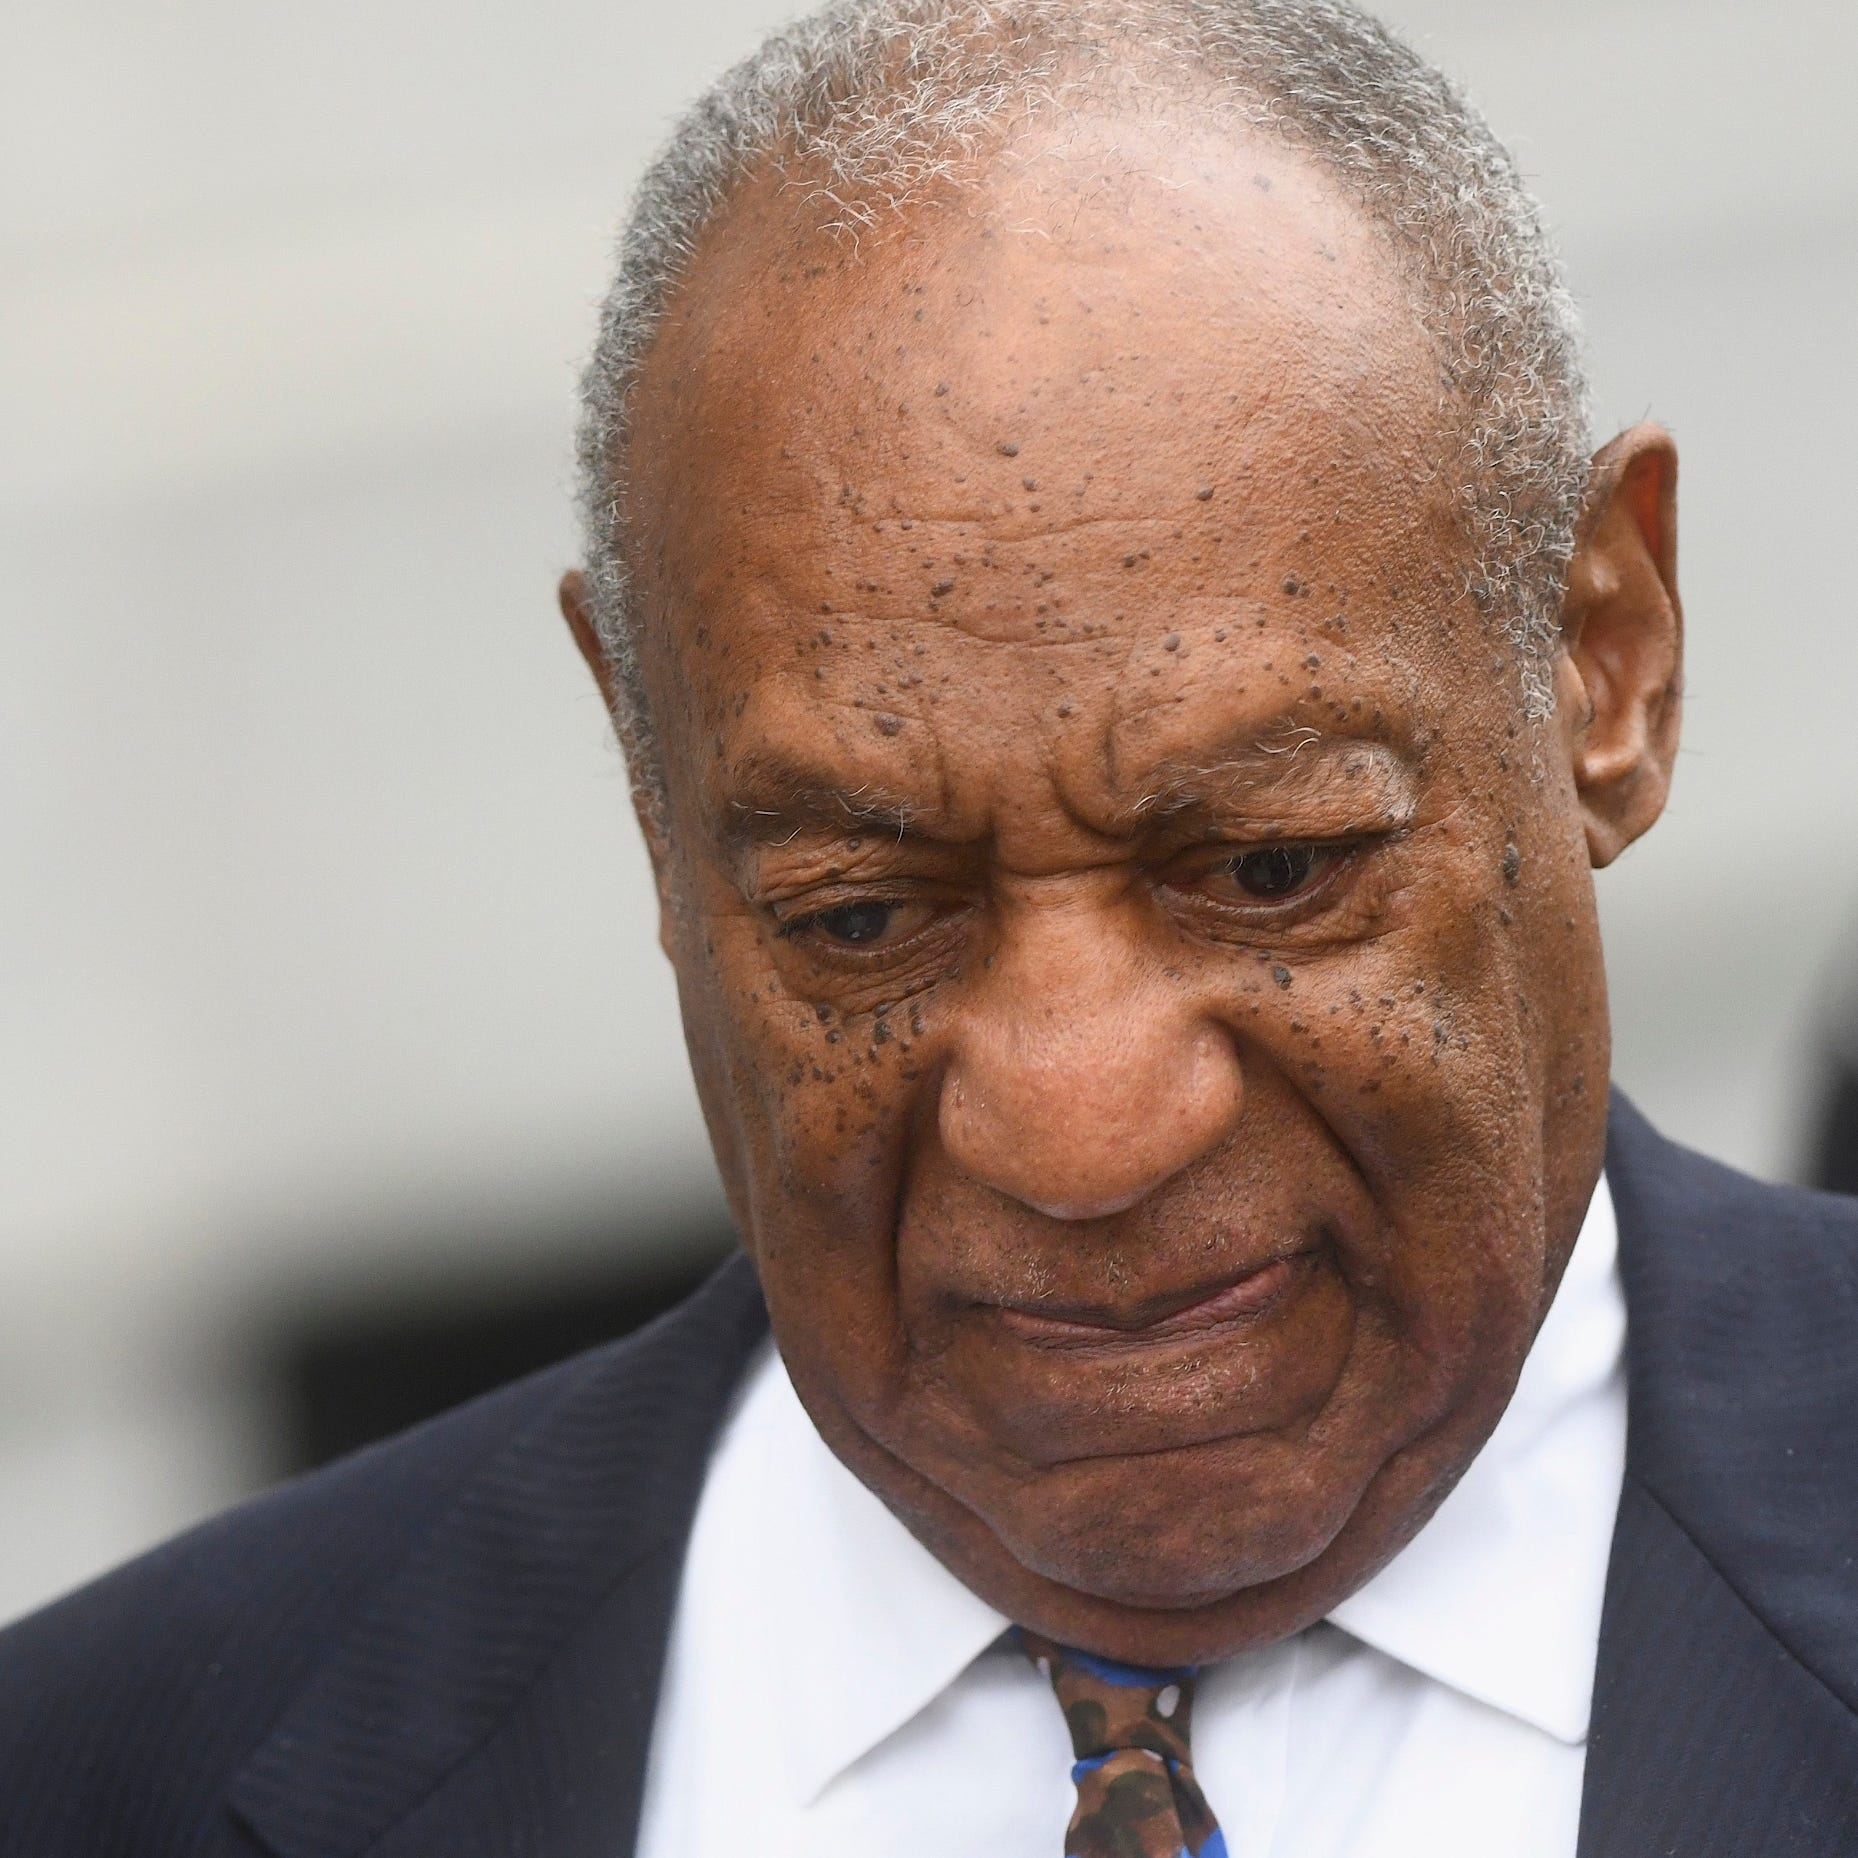 Twitter reacts to Bill Cosby sentencing amidst #MeToo, Brett Kavanaugh allegations